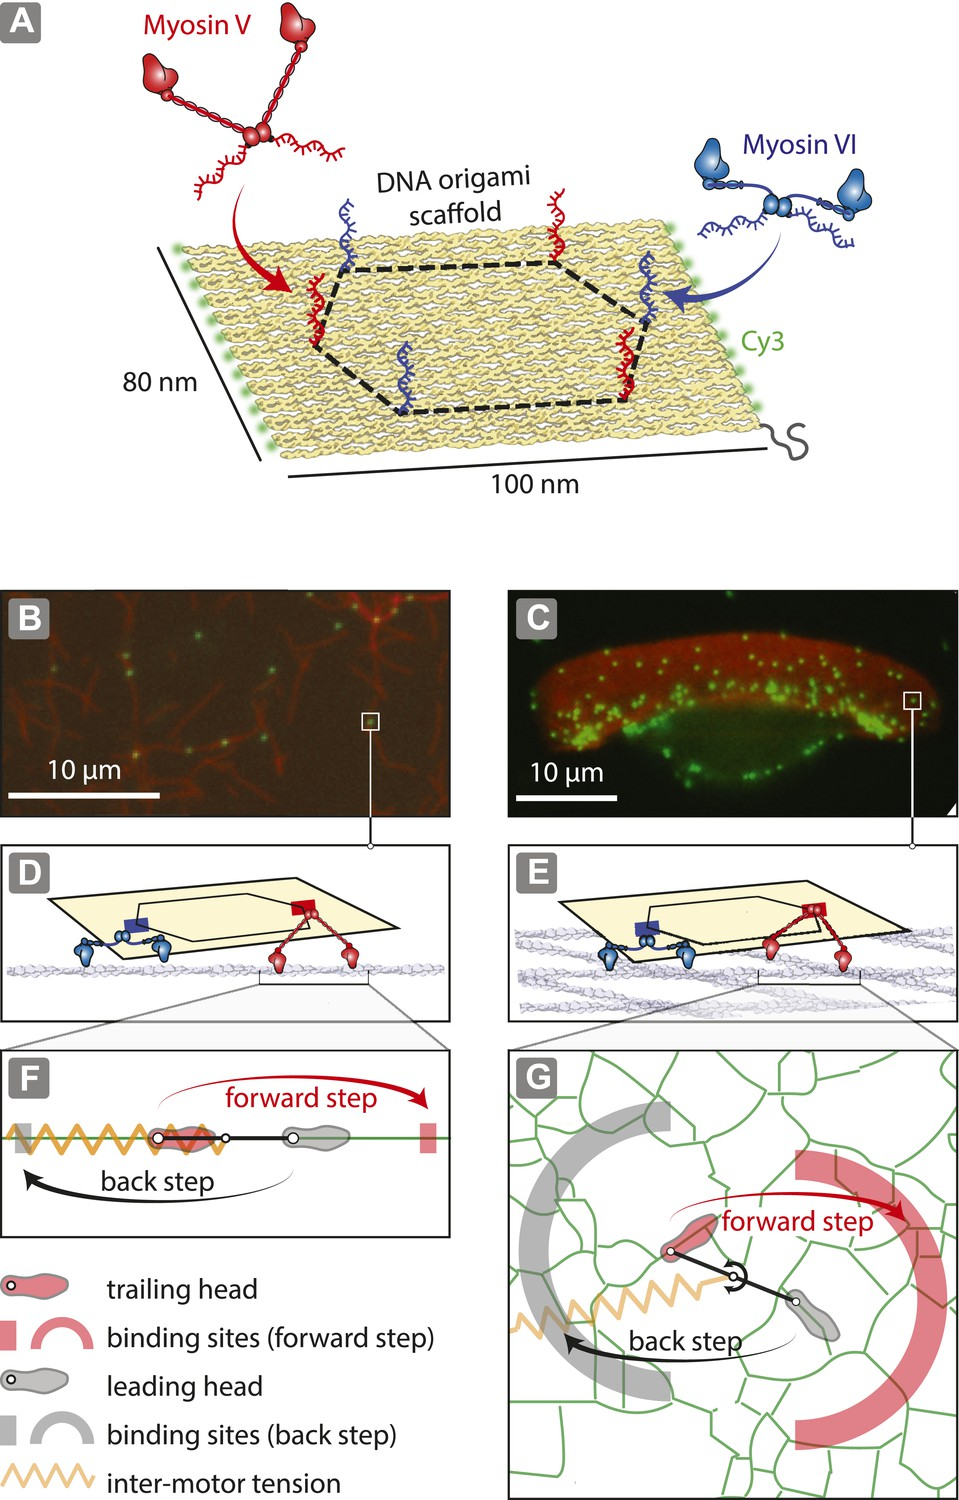 Tuning Myosin Driven Sorting On Cellular Actin Networks Elife Motor Control Circuit File Alternative Link Bidirectionmotorspeed Reconstitution Of Cargo 1d And 2d Tracks